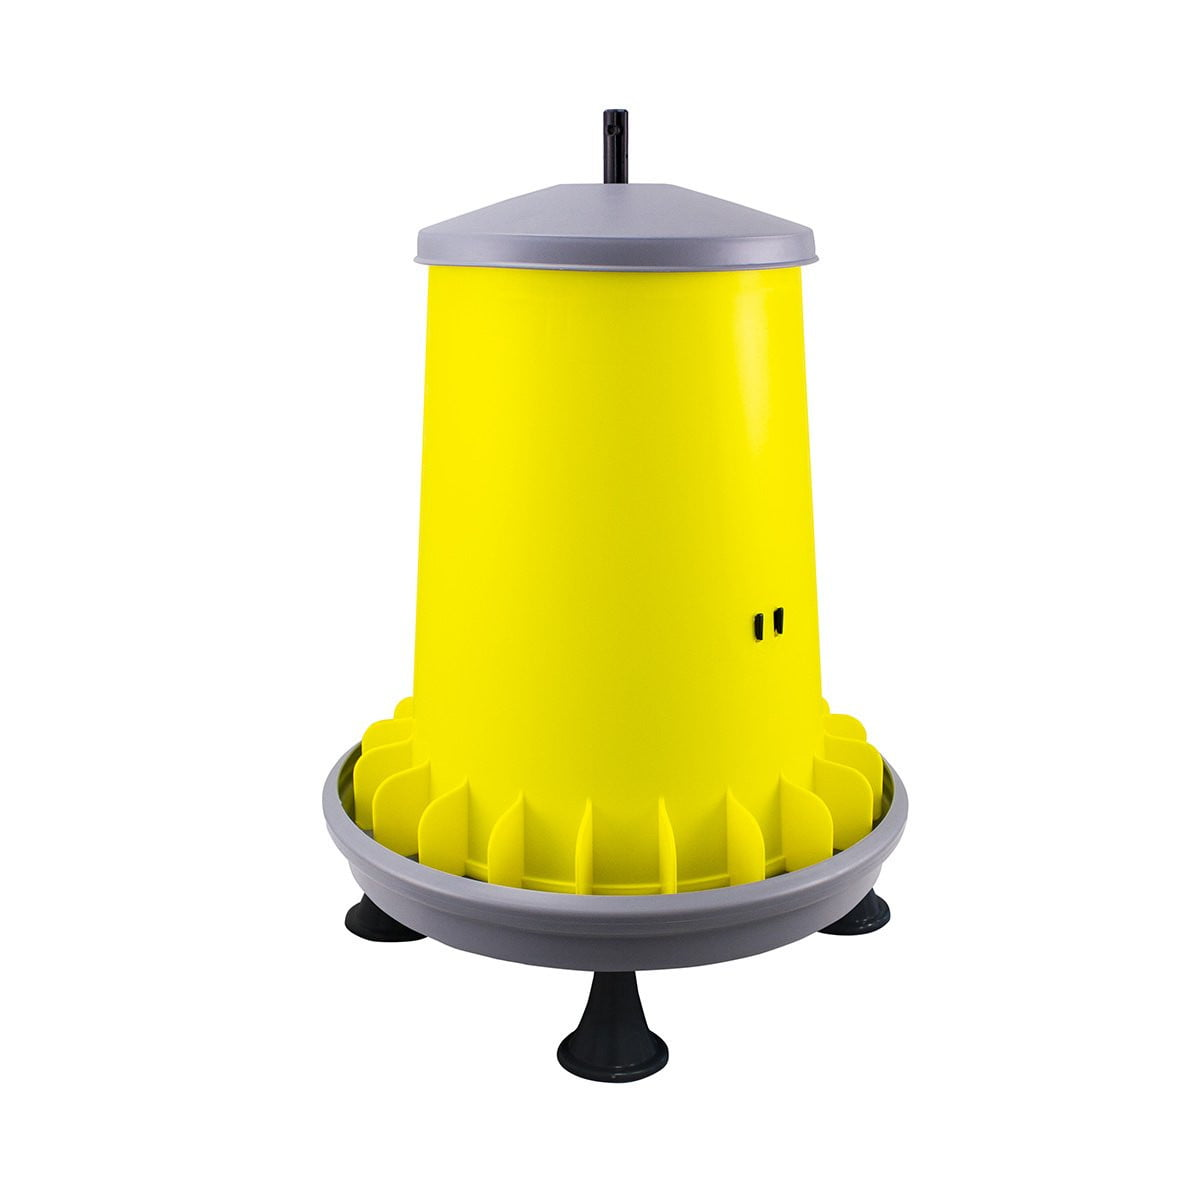 PRE-ORDER: Arcus Gyro Poultry Feeder - Urban-Egg - Poultry Roll Away Nest Boxes, Chicken Feeders, and More